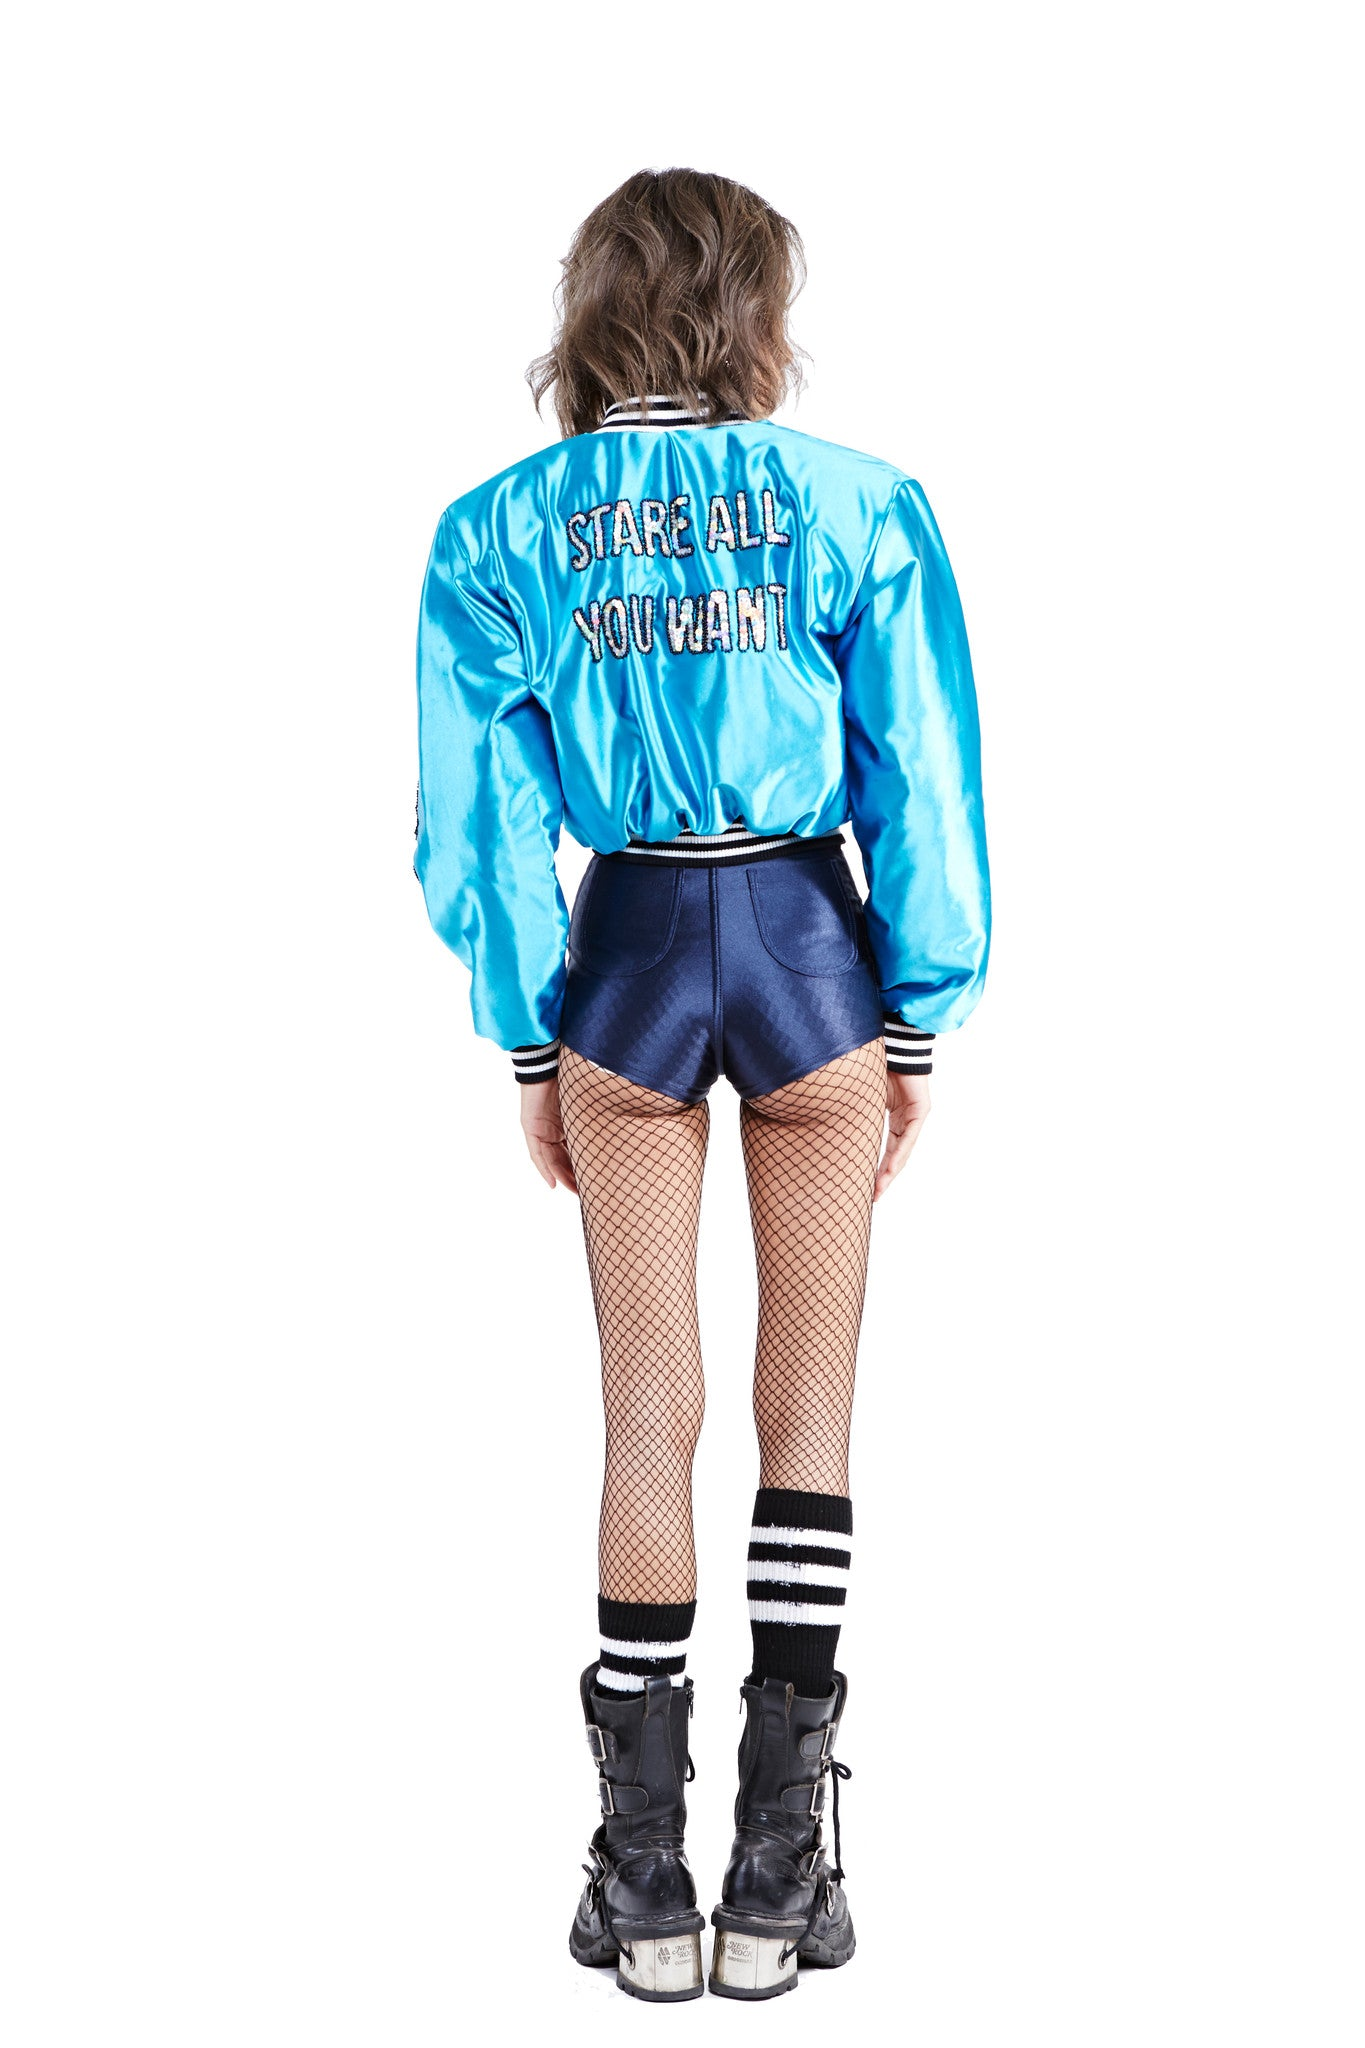 DON'T CARE Bomber Jacket - Electric Blue - I LOVE DIY by Panida